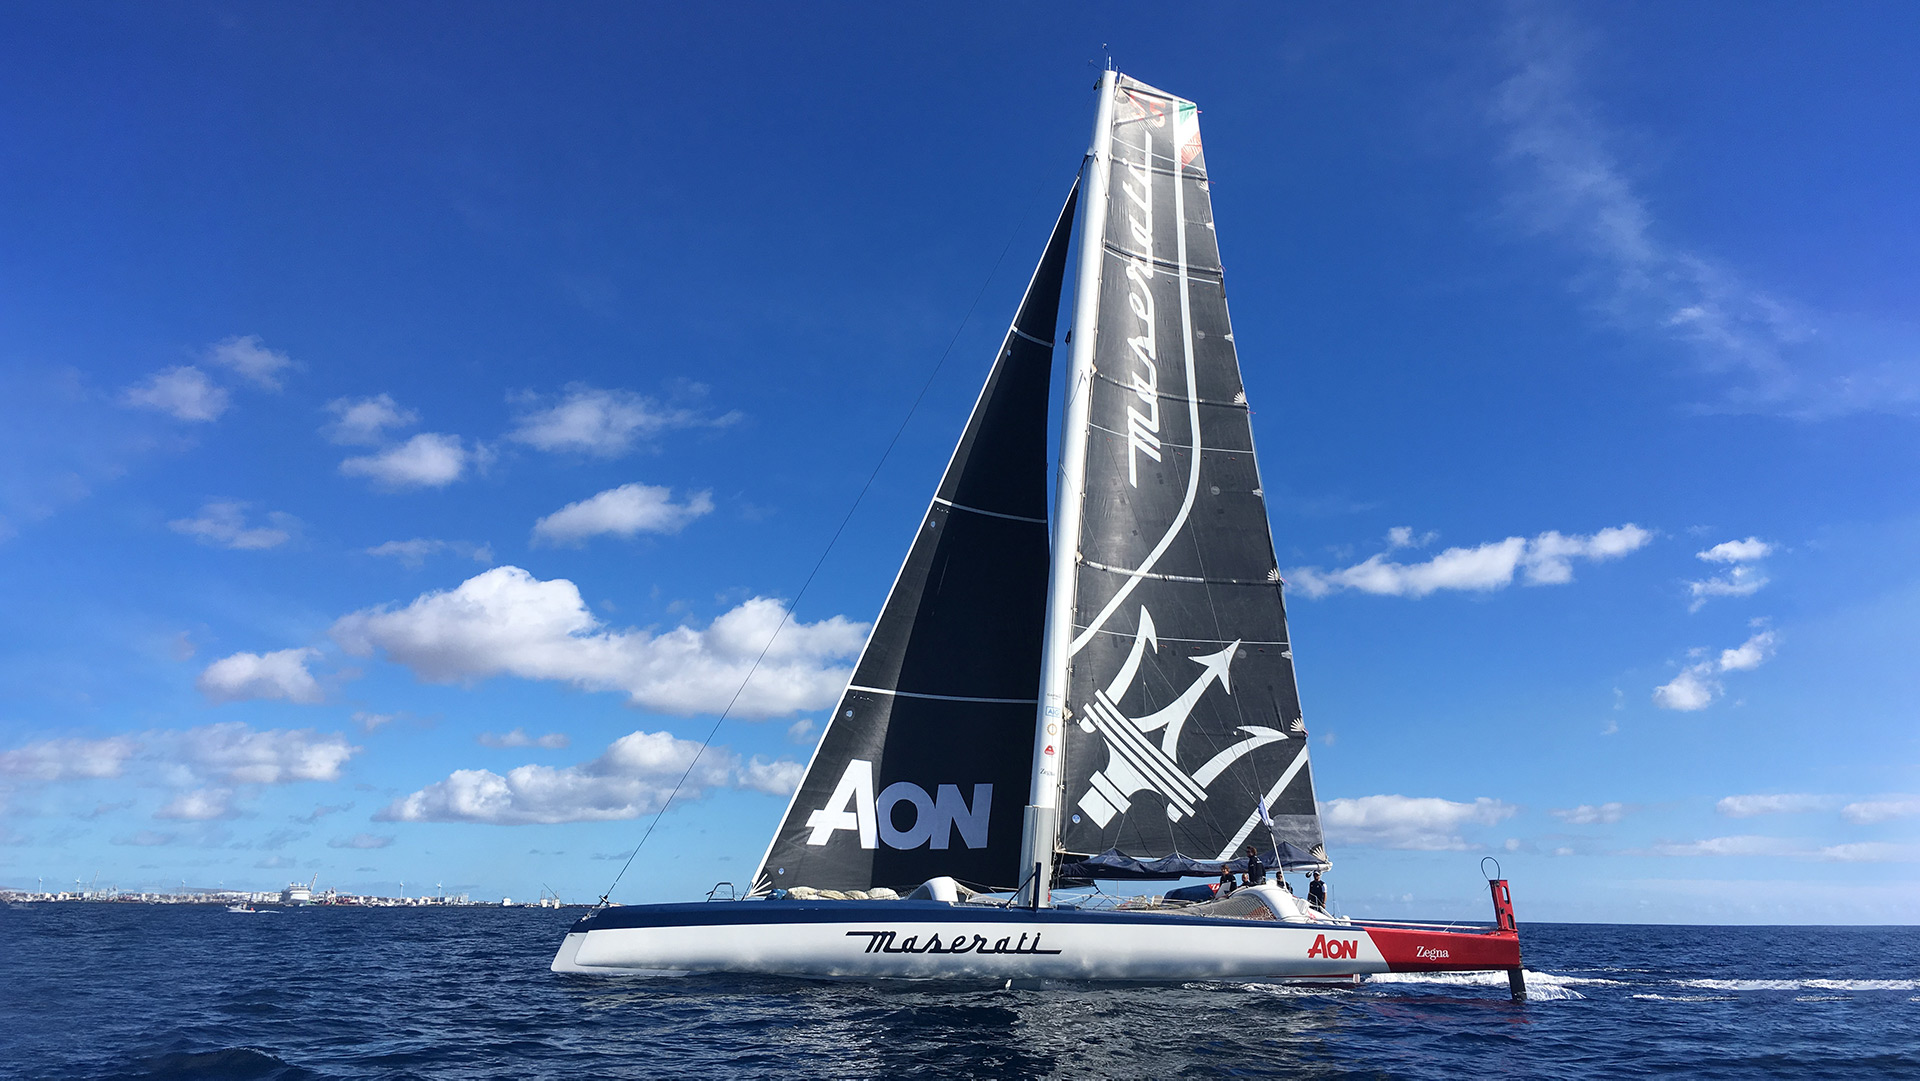 Maserati Multi 70 sailing at the CA 500 race